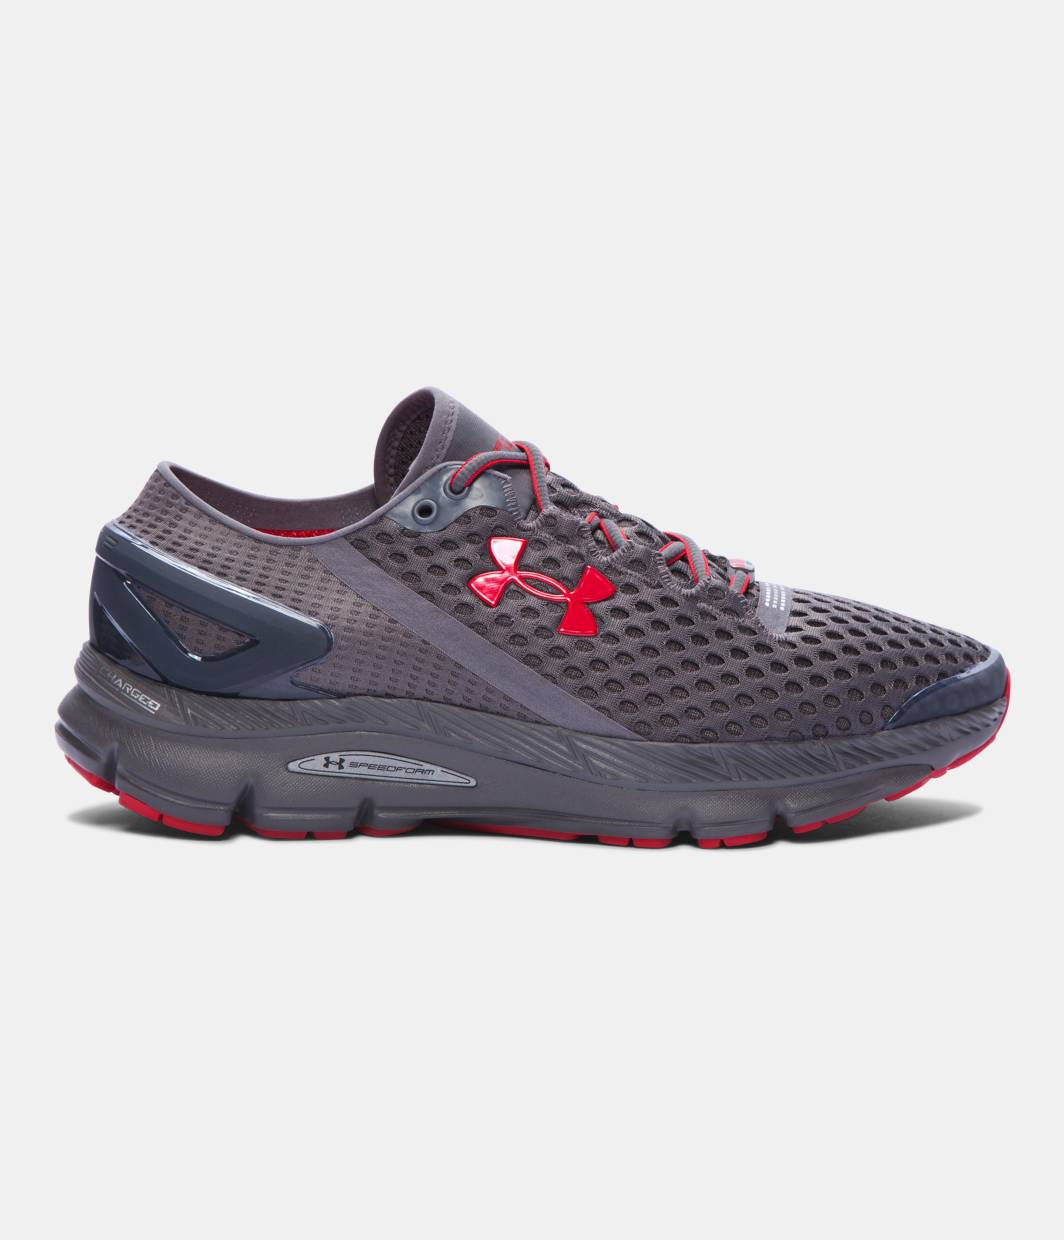 Cheap Under Armour Shoes | Cheap Nike Basketball Shoes | Under Armour Superhero